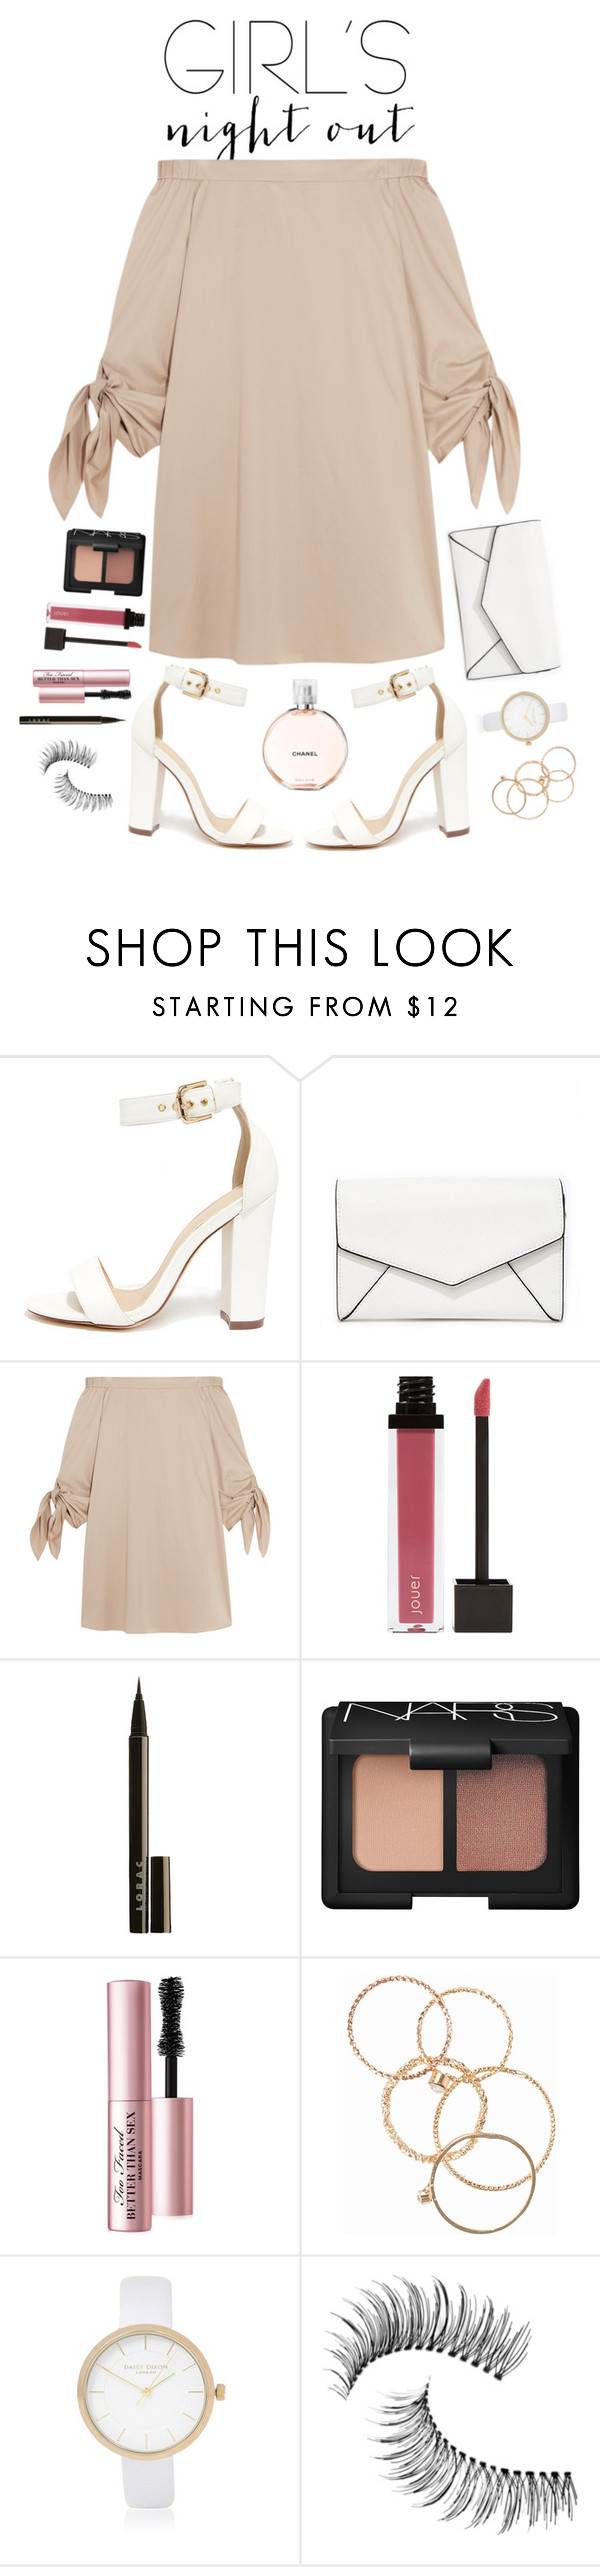 """""""Girl's Night Out"""" by kmeowj ❤ liked on Polyvore featuring Liliana, LULUS, TIBI, Jouer, LORAC, NARS Cosmetics, Too Faced Cosmetics, NLY Accessories, River Island and Trish McEvoy"""